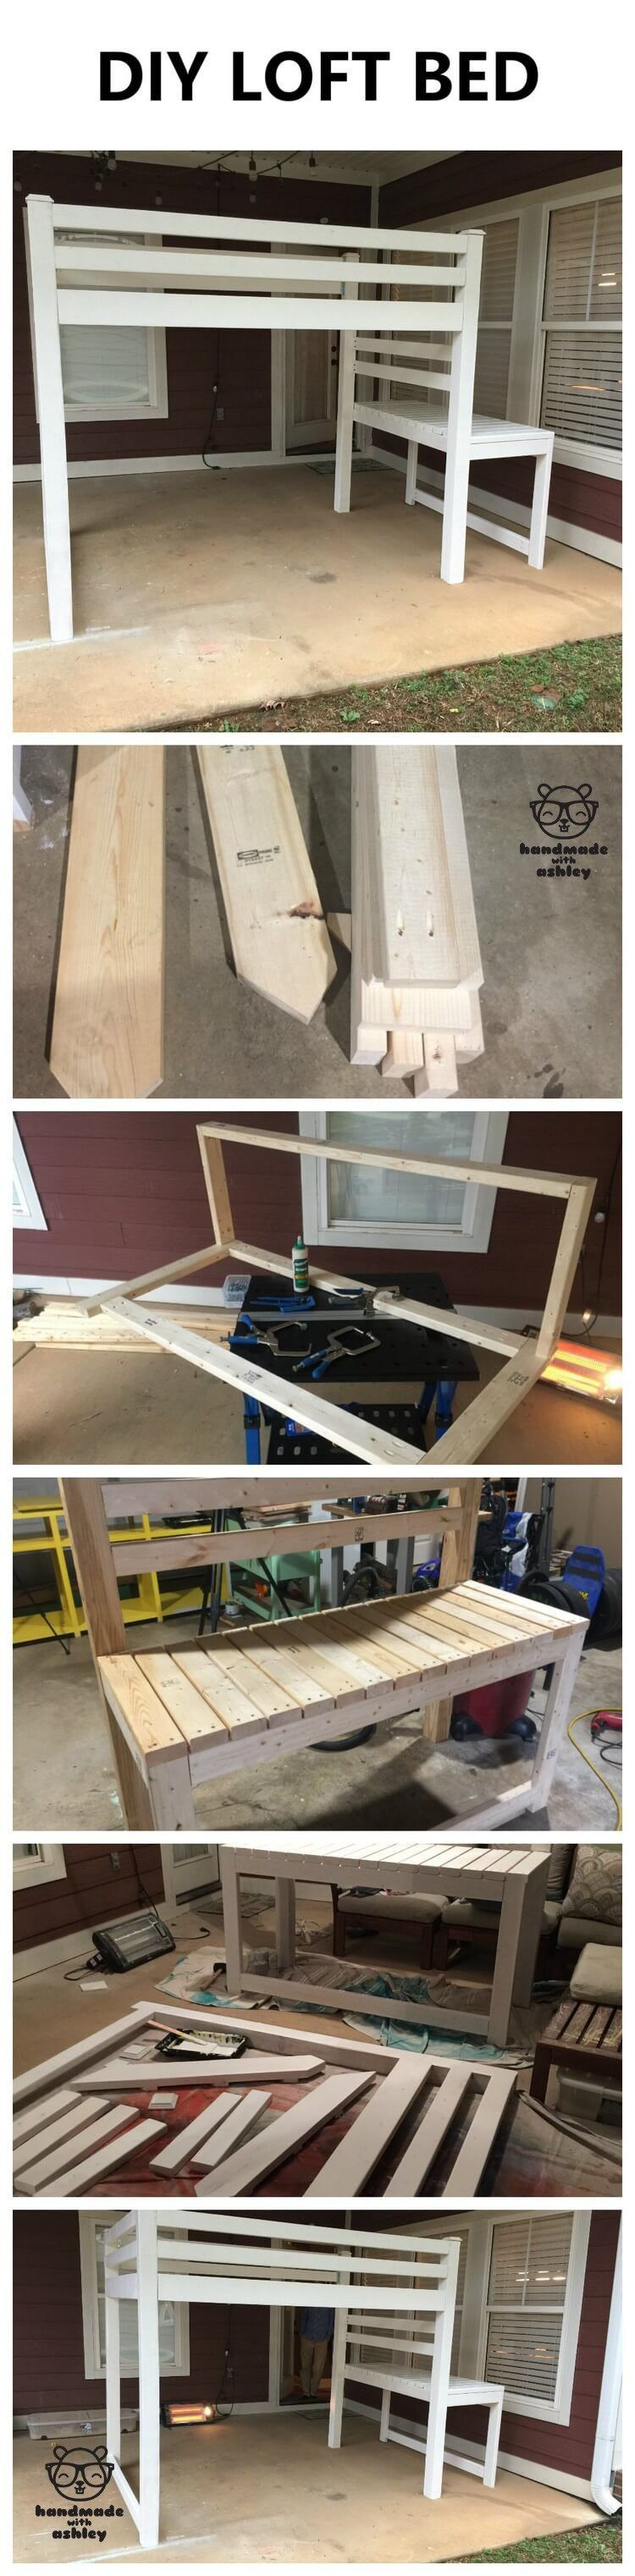 Plywood loft bed plans  DIY Junior Loft Bed  Free Woodworking Plans by ANA WHITE  Dané